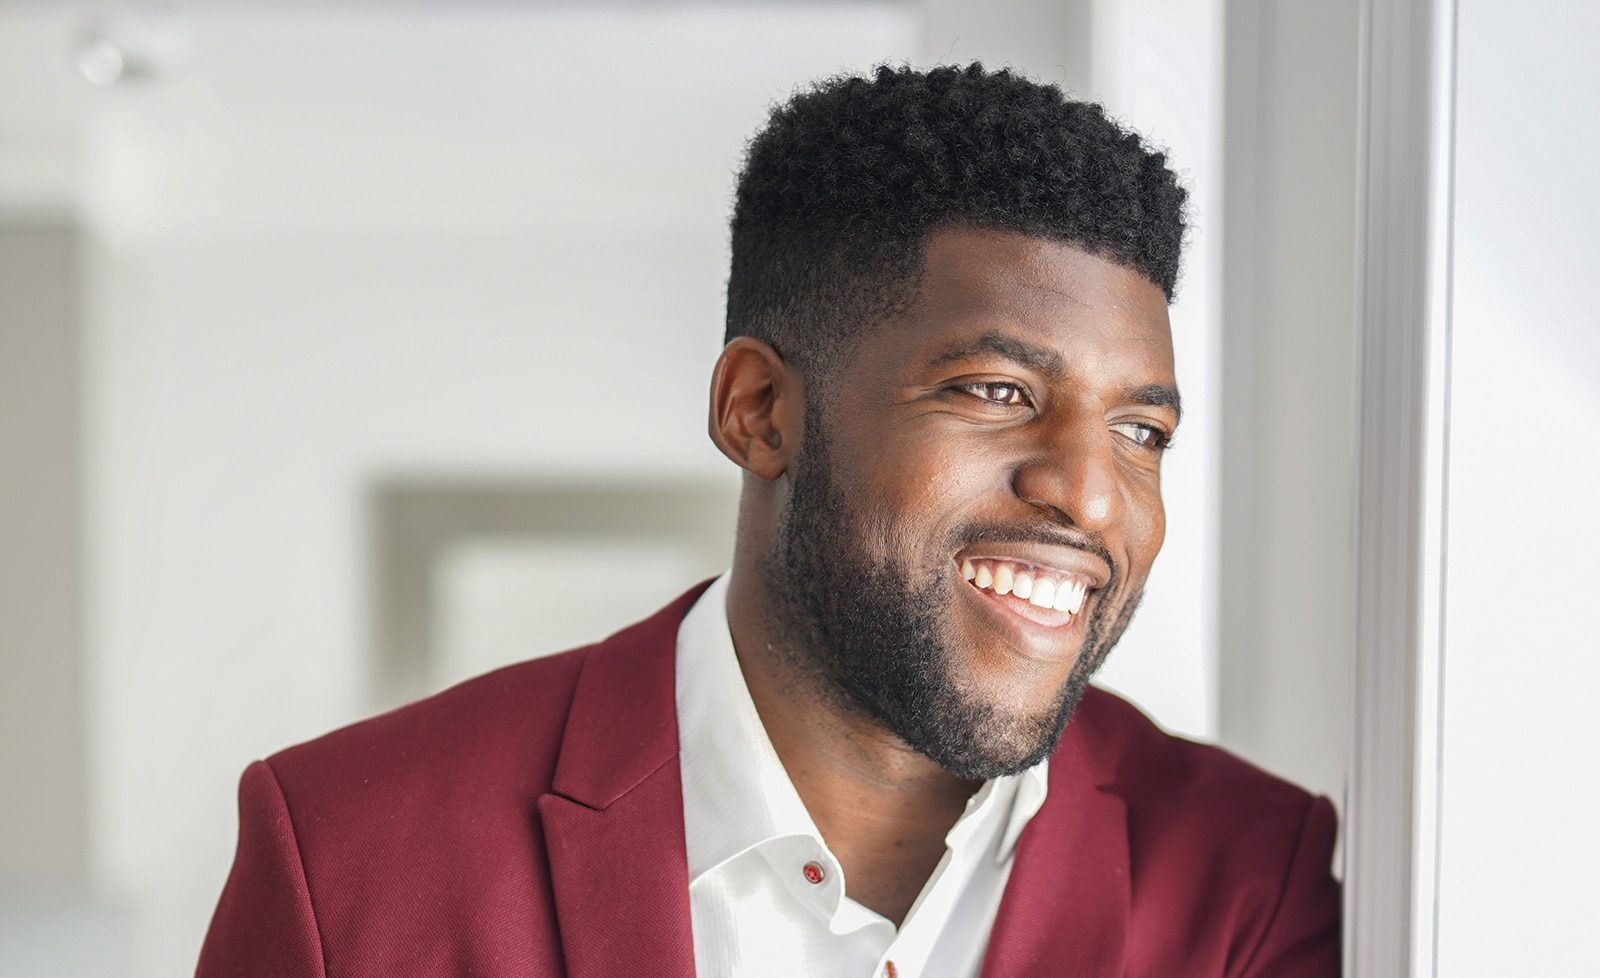 Emmanuel Acho might take the role in The Bachelor